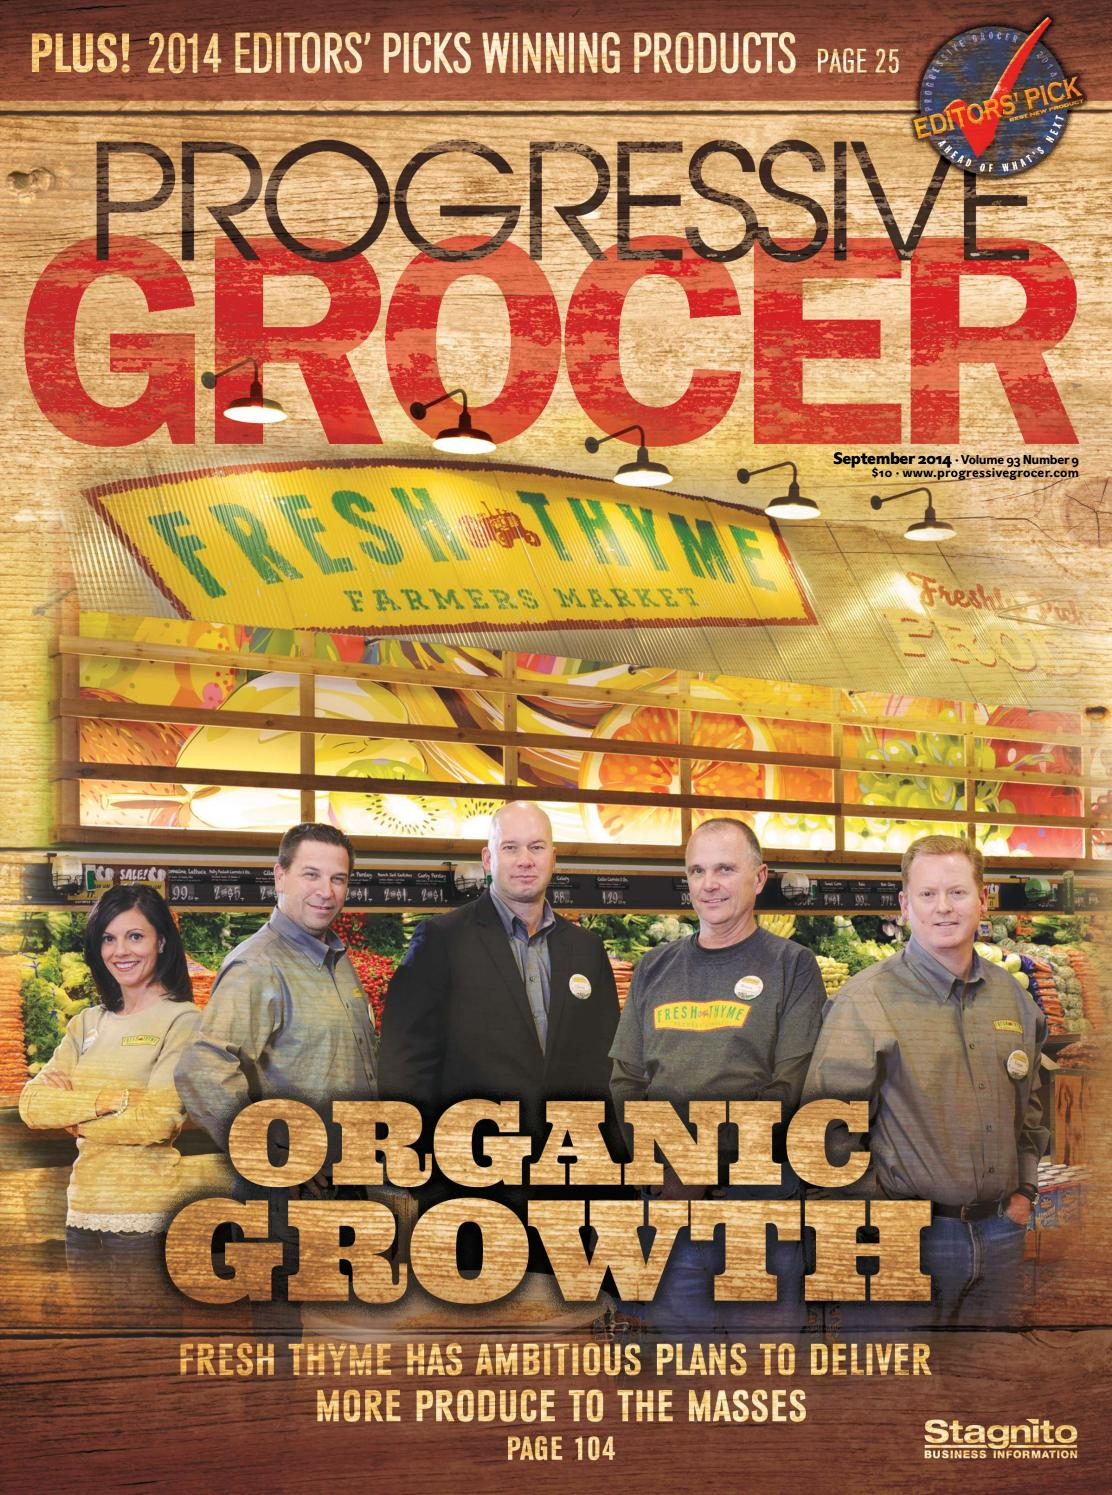 Progressive Grocer September 2014 By Ensembleiq Issuu